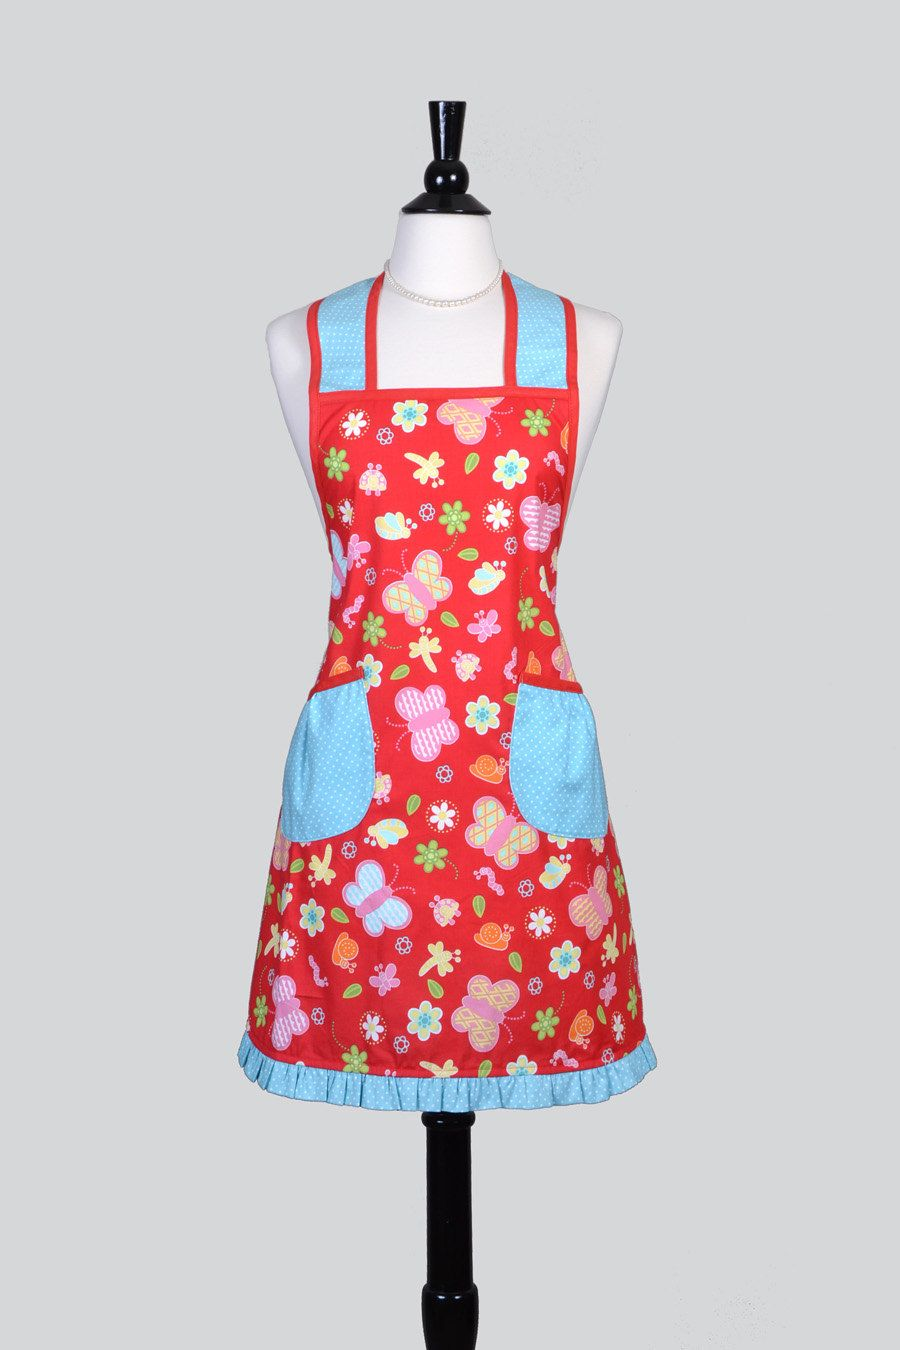 women's retro apron features red and aqua fabric with butterflies